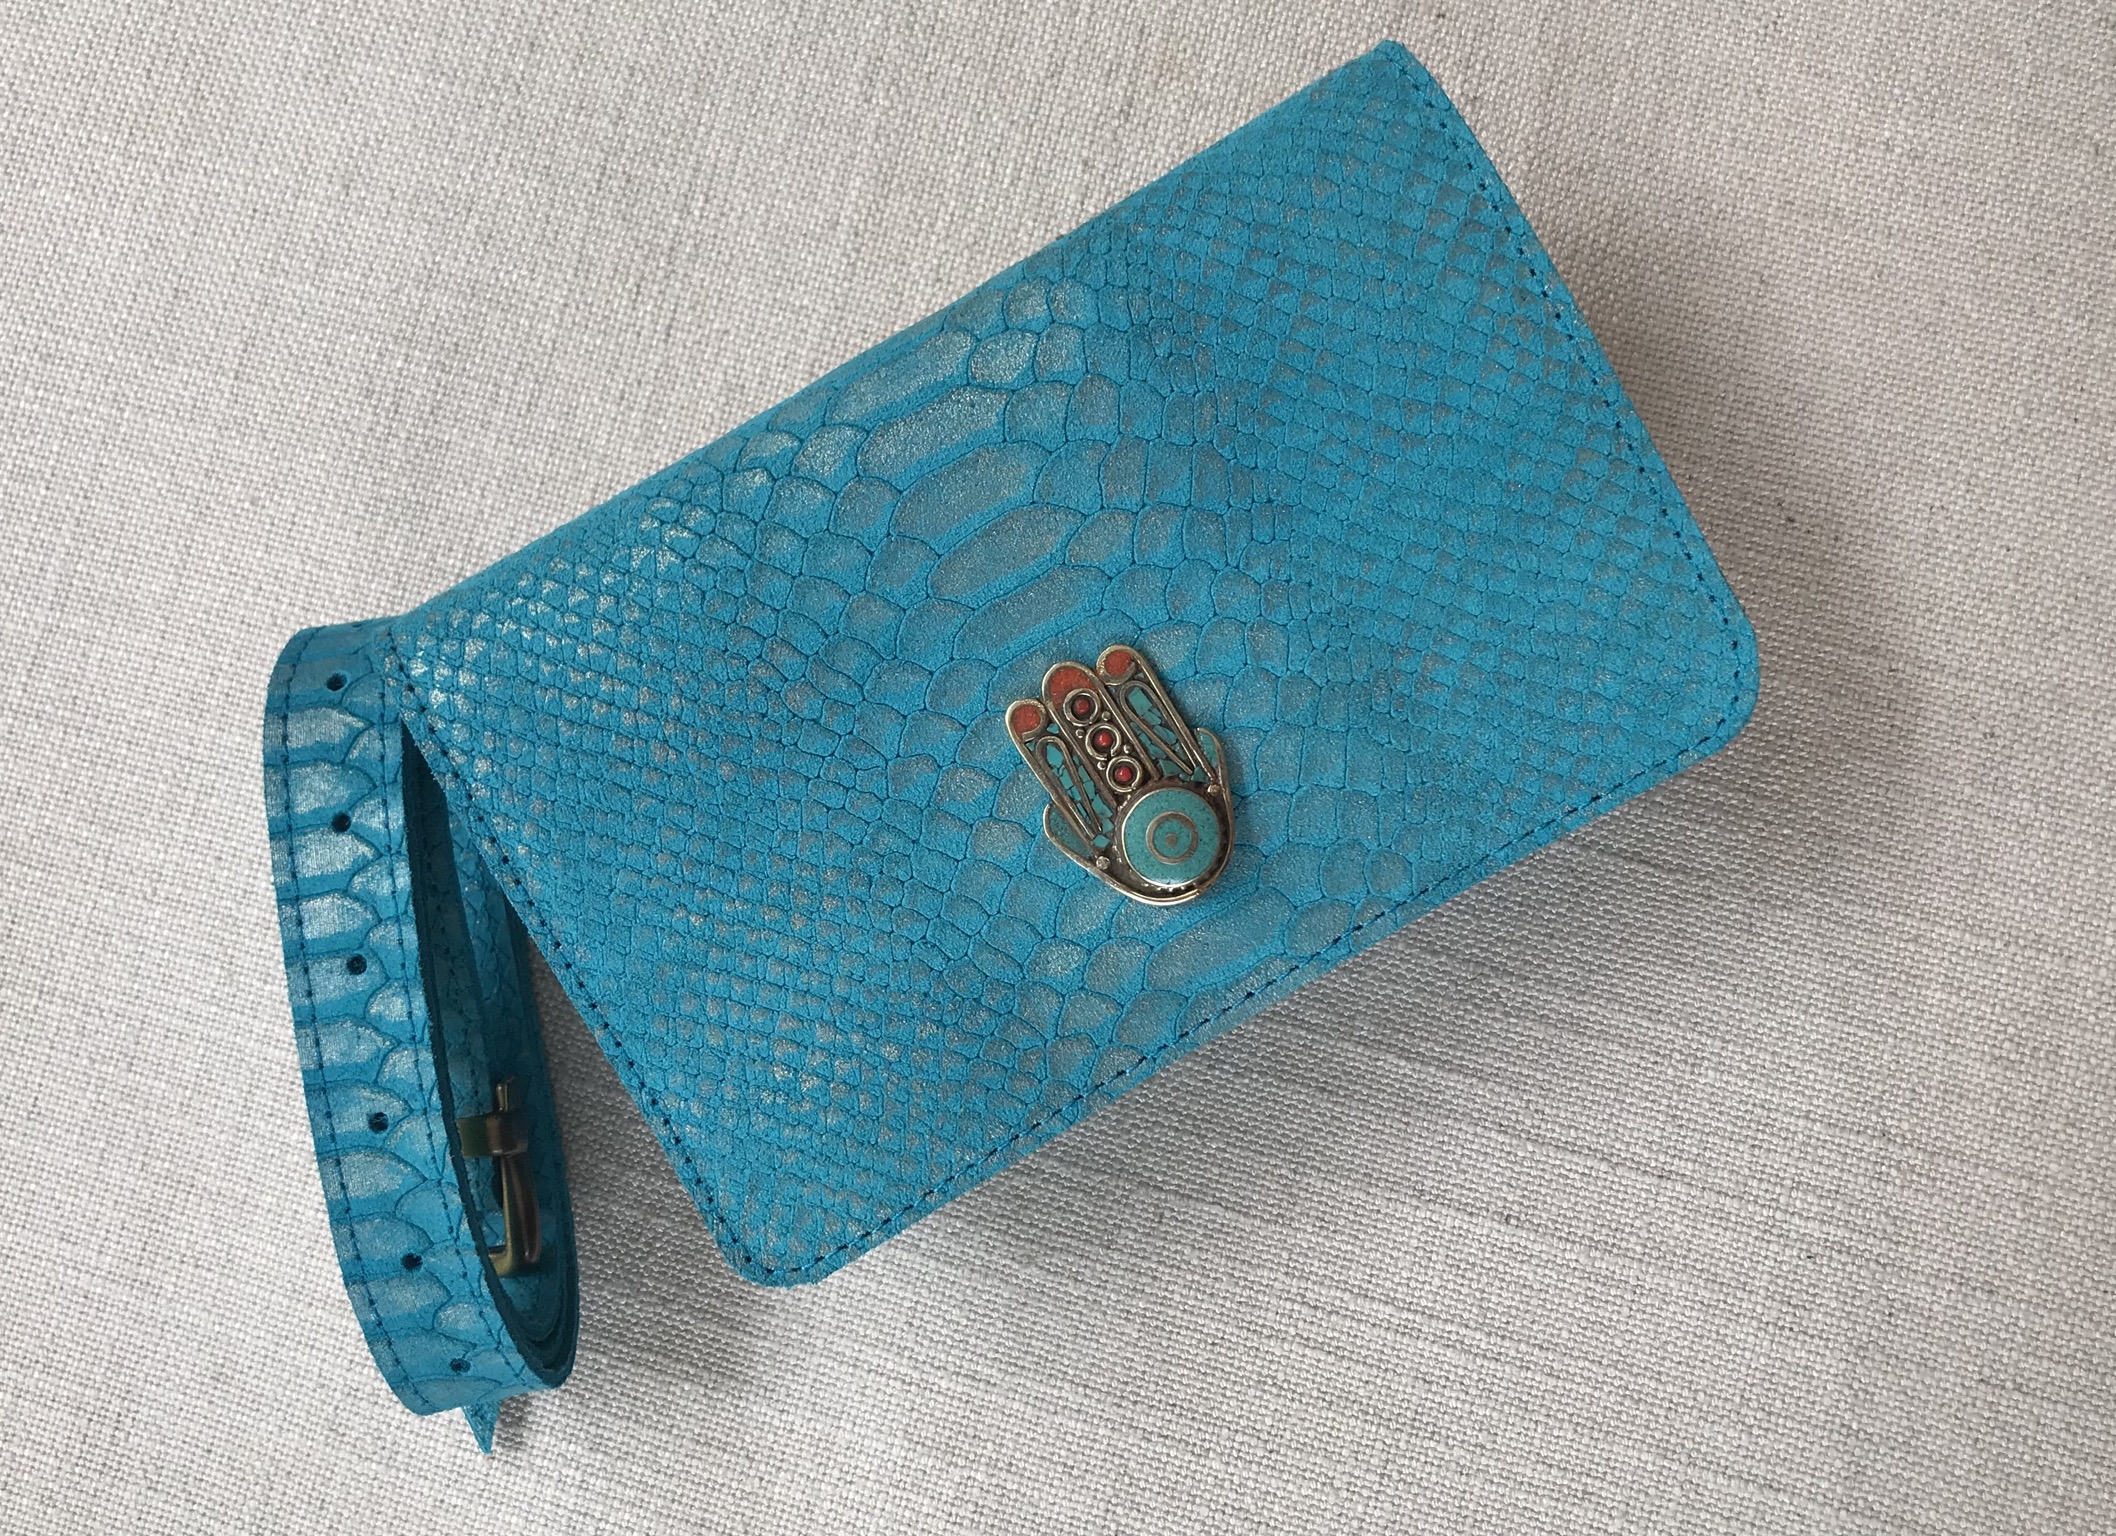 Bag leather croco turquoise with khmissa jewelry